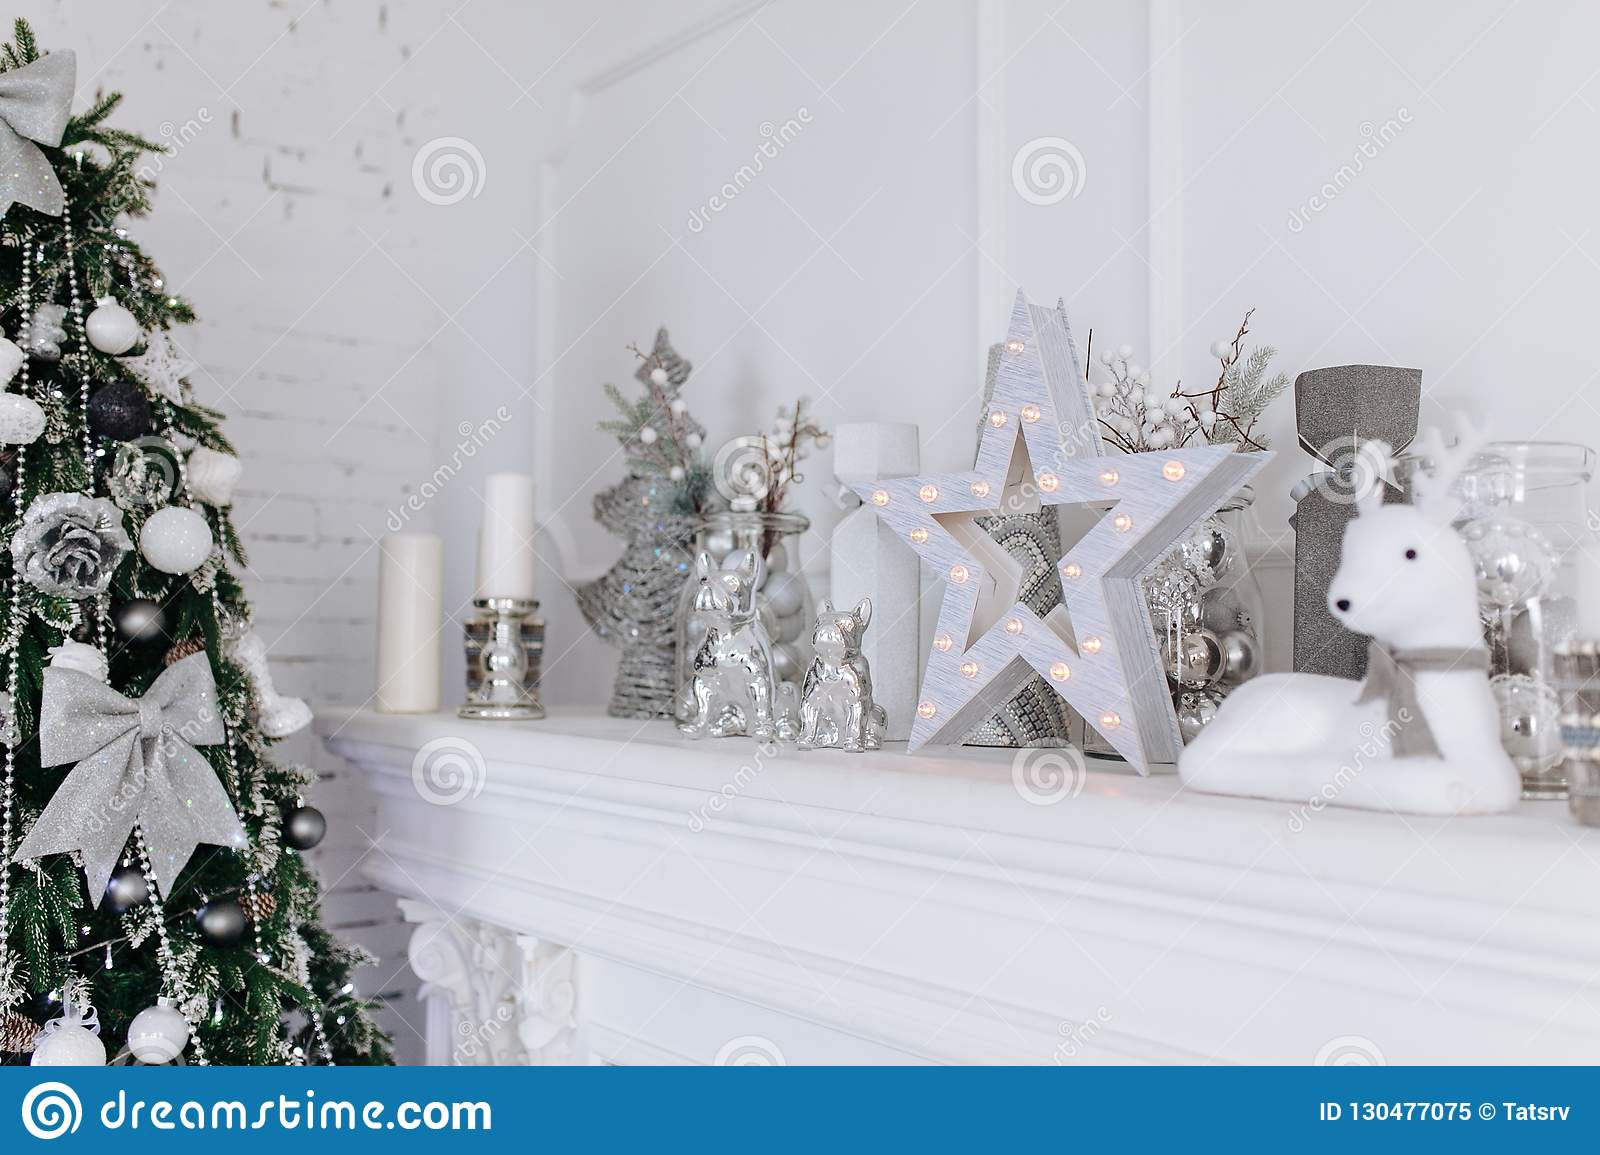 Christmas And New Year White And Silver Decorations On Fireplace In ...